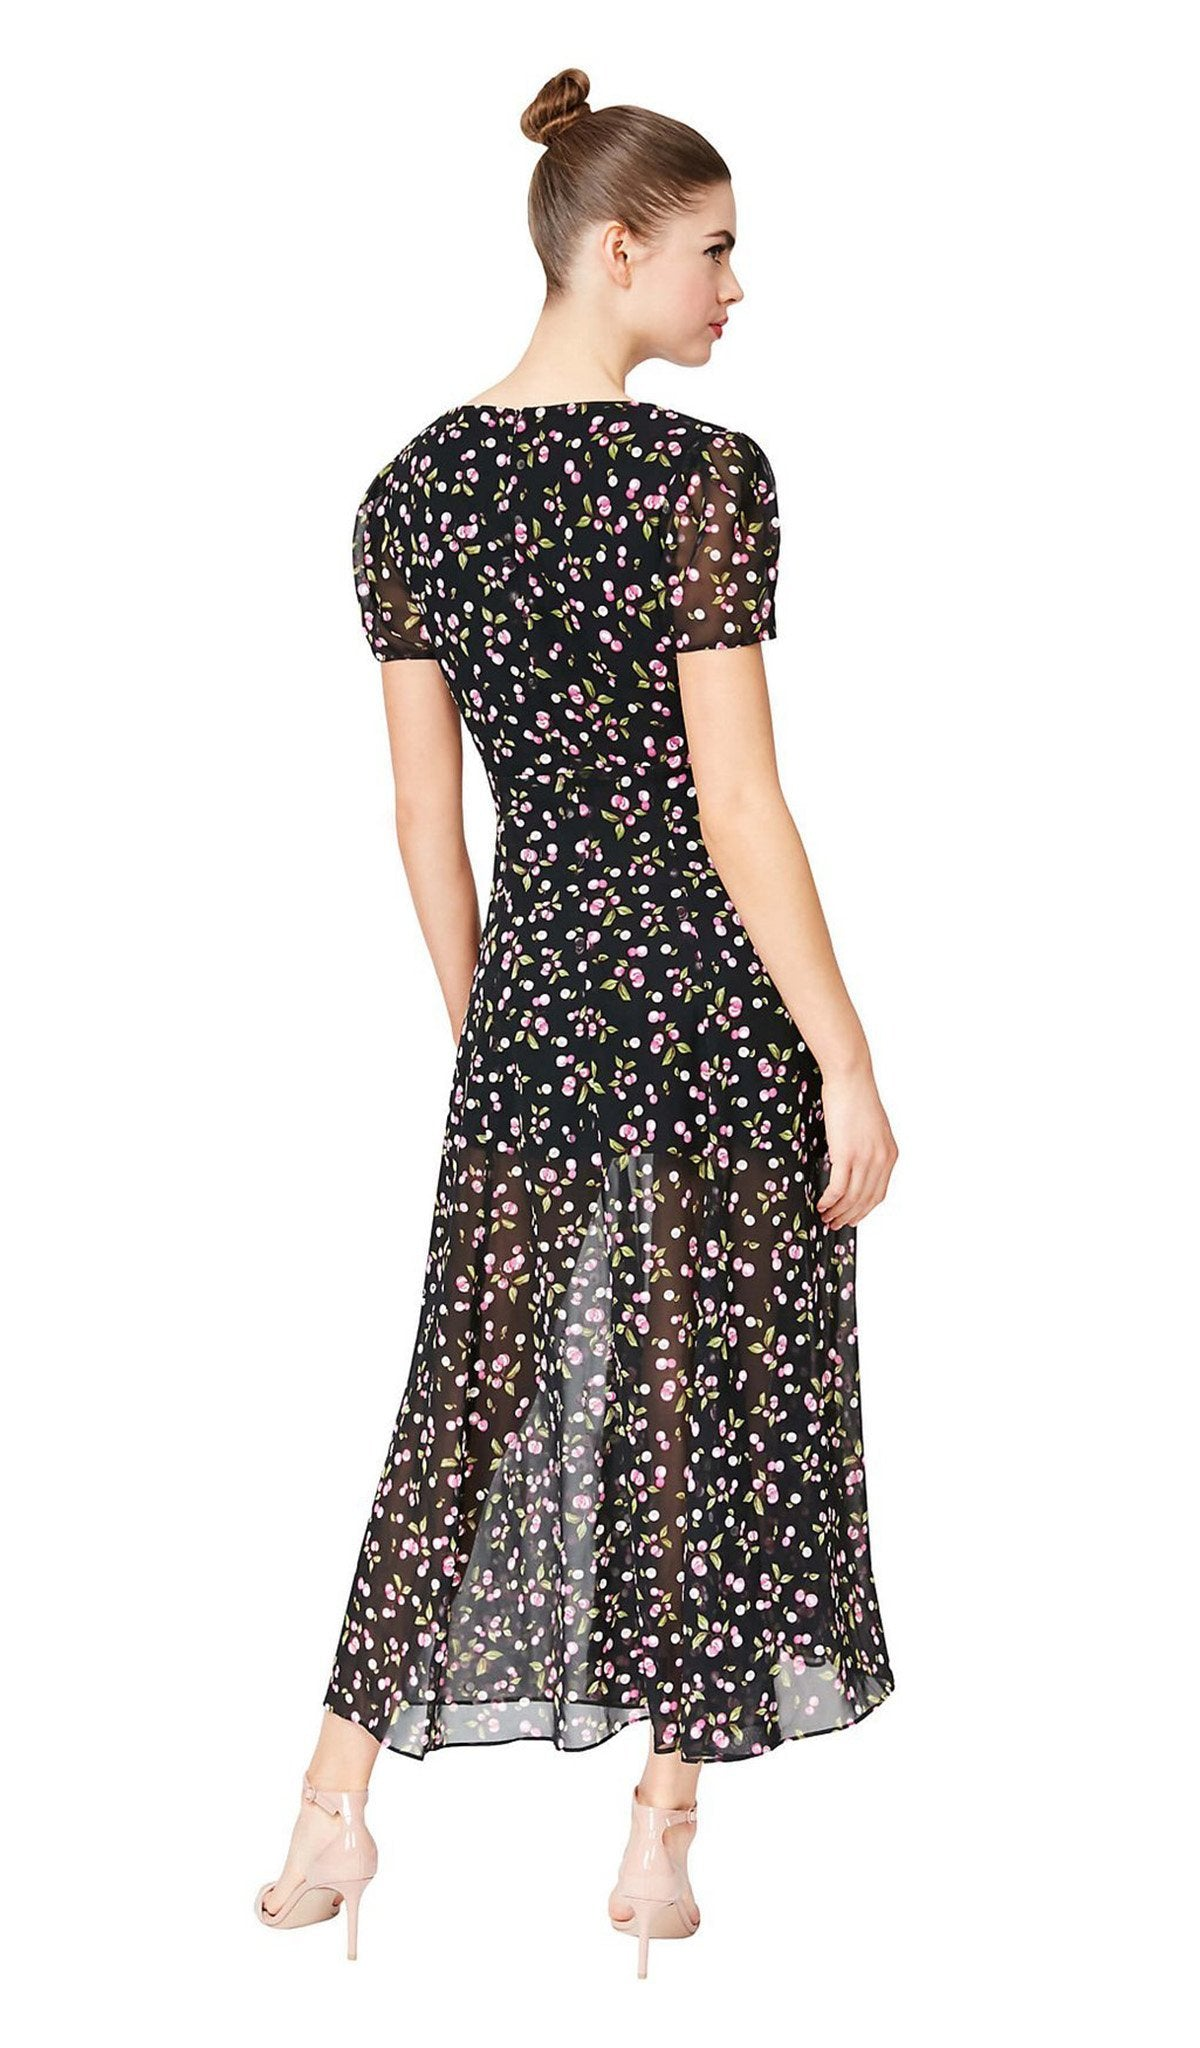 Betsey Johnson - FM03K10 Multi-colored Print A-line Dress In Black and Multi-Color